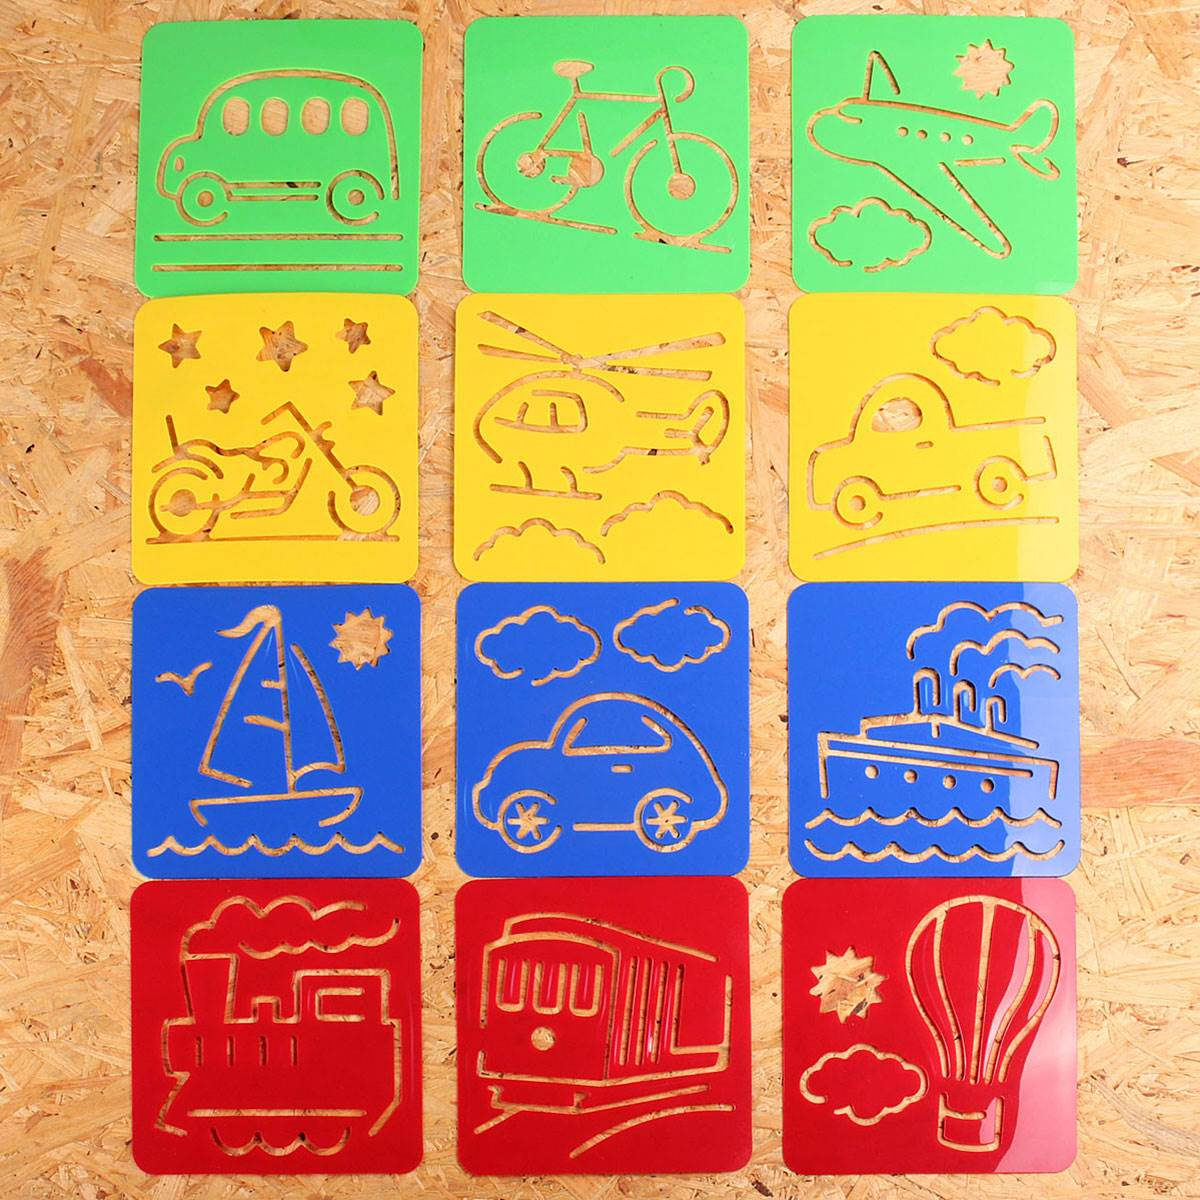 12pcs children favor transport shaped plastic oppssed painting tool learning drawing template stencil toy best gift for kids - Free Kids Stencils